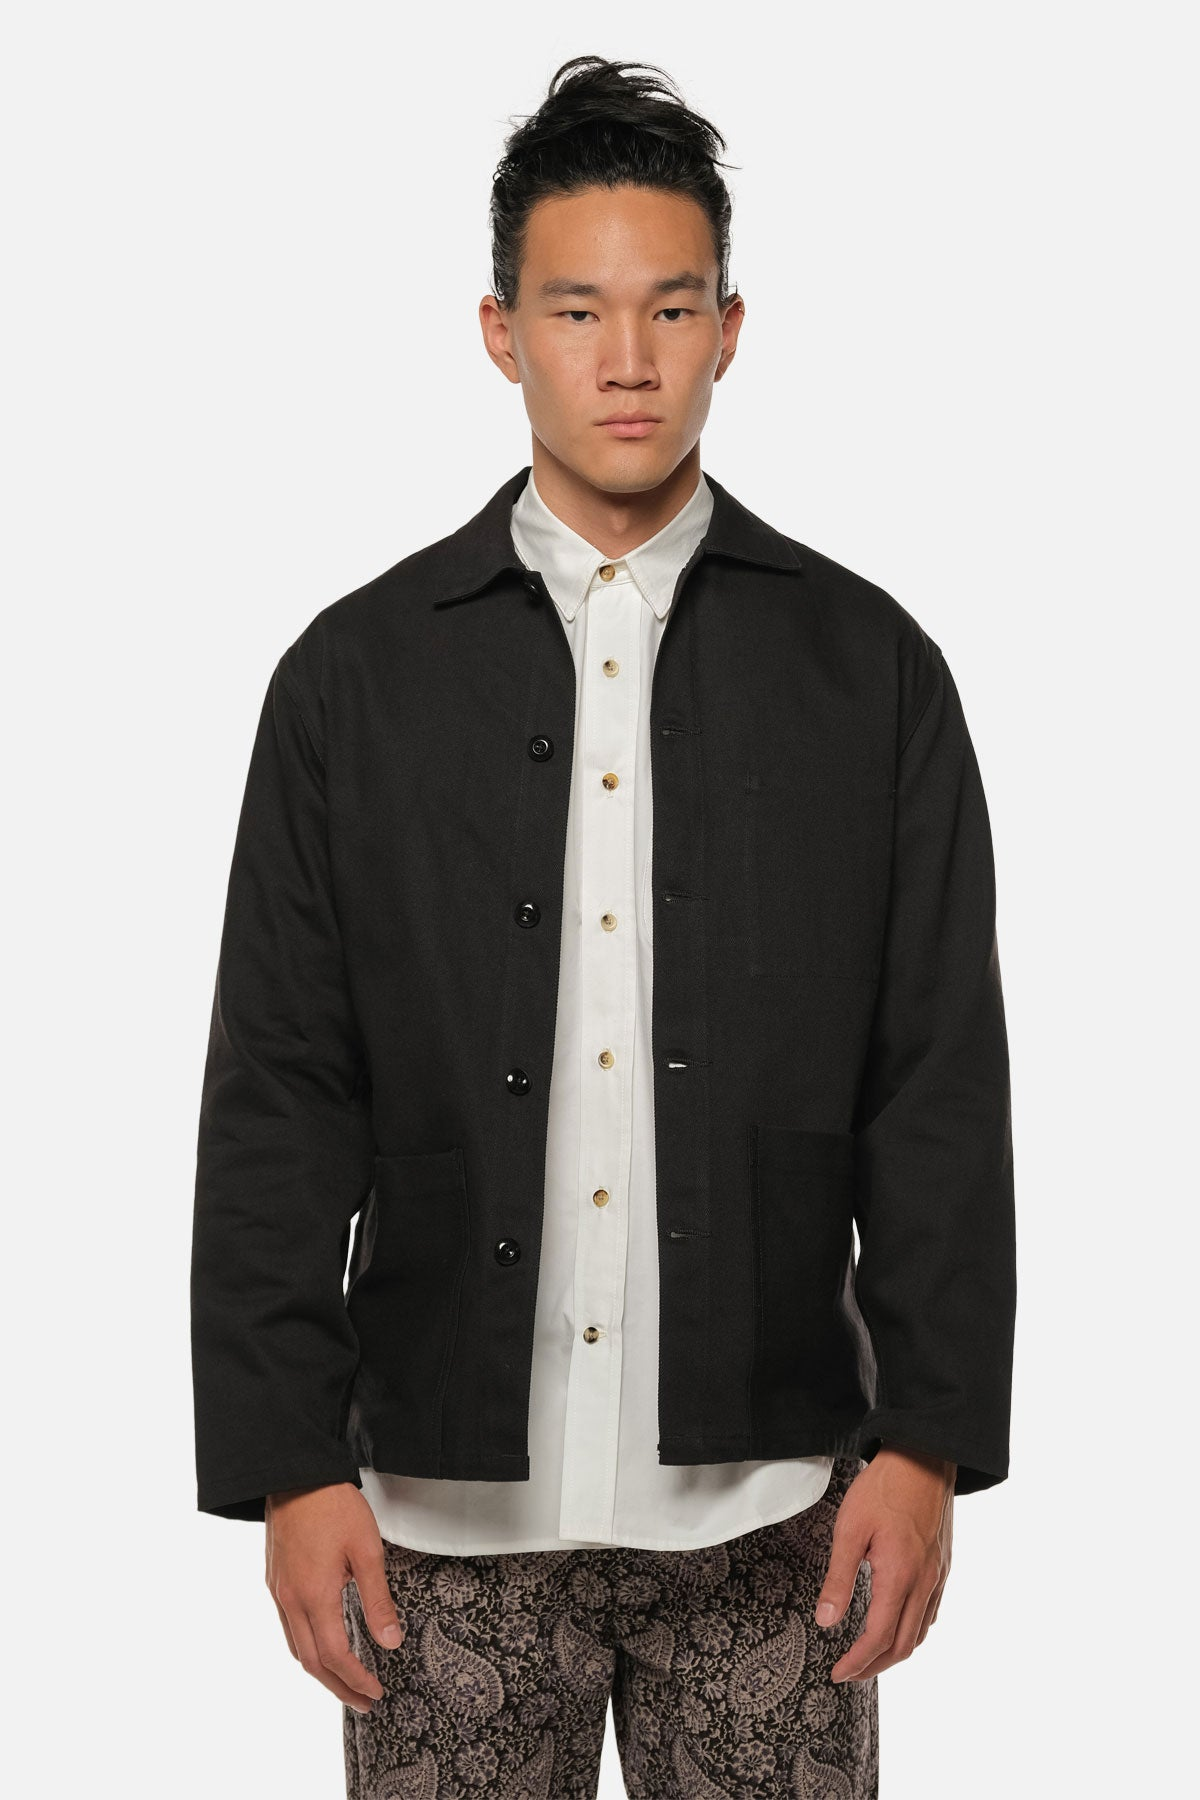 STATION JACKET IN BLACK - Fortune Goods